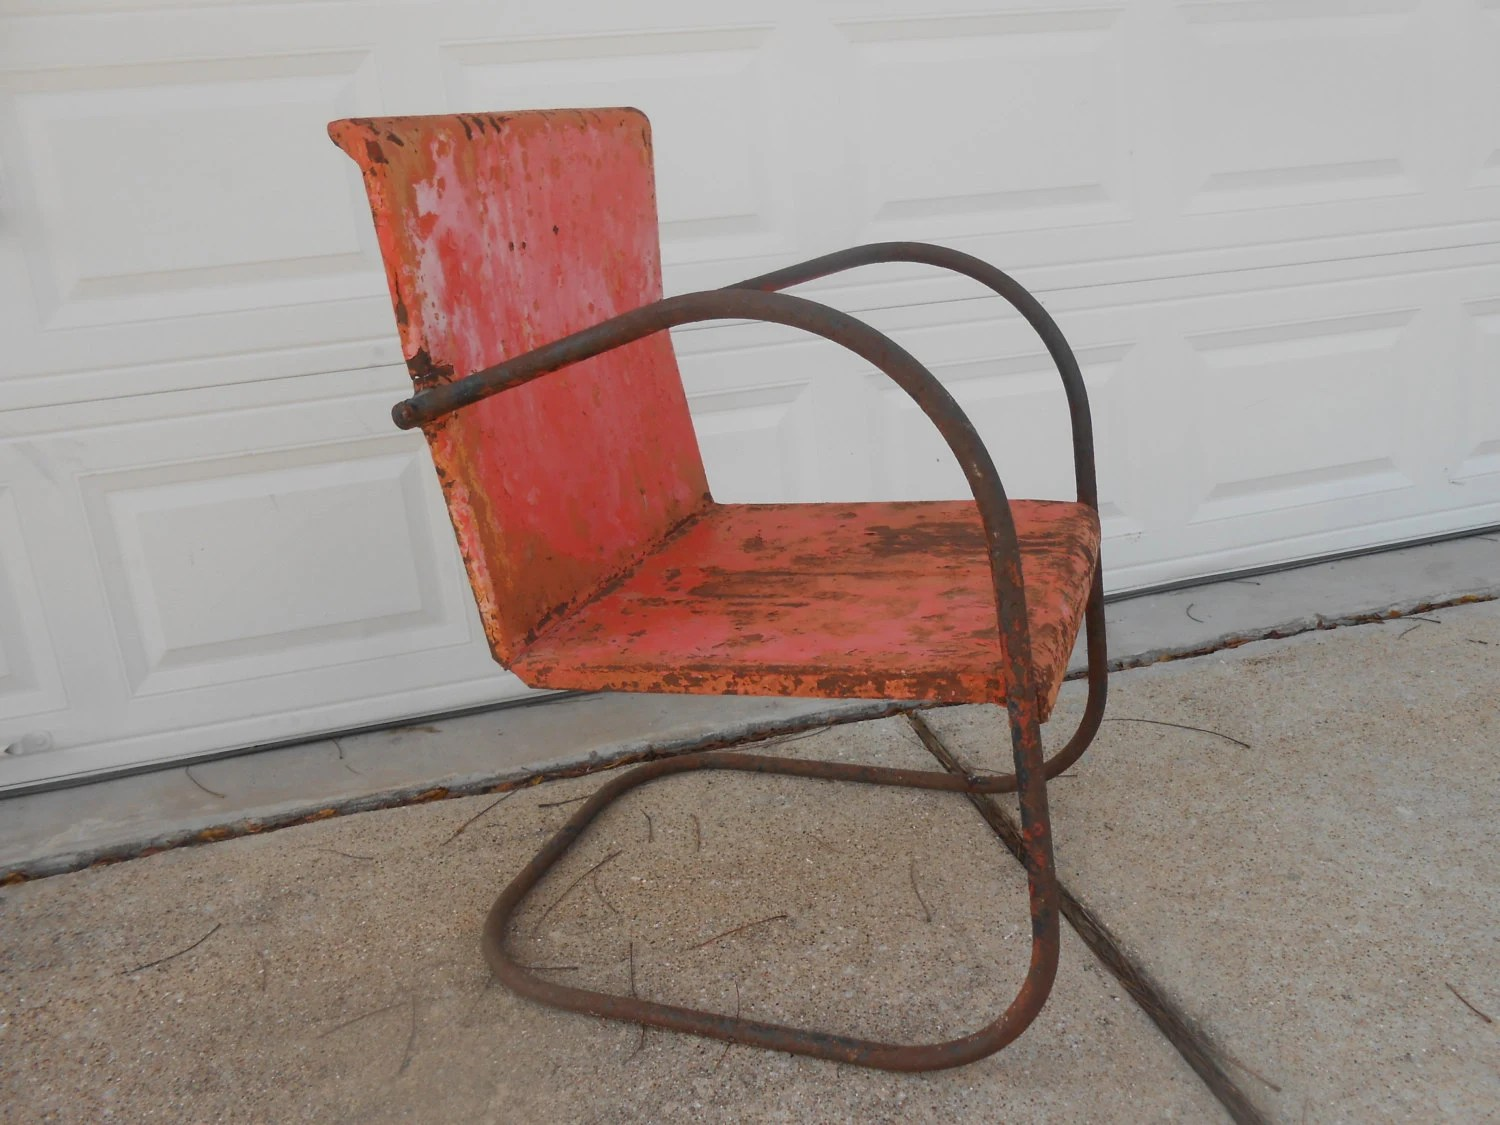 antique lawn chairs swing chair stand price metal rusty shabby chic cottage porch patio etsy image 0